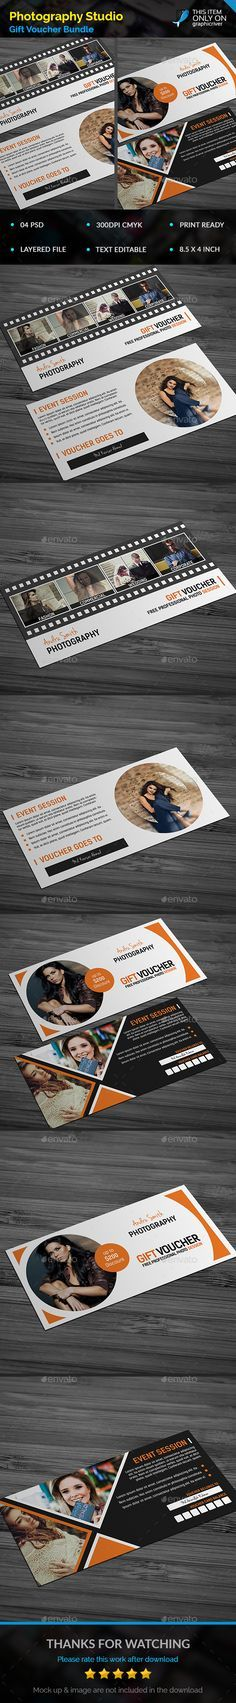 """Photography Gift Voucher Template PSD Bundle. Download here: <a href=""""http://graphicriver.net/item/photography-gift-voucher-bundle/14954865?ref=ksioks"""" rel=""""nofollow"""" target=""""_blank"""">graphicriver.net/...</a>"""